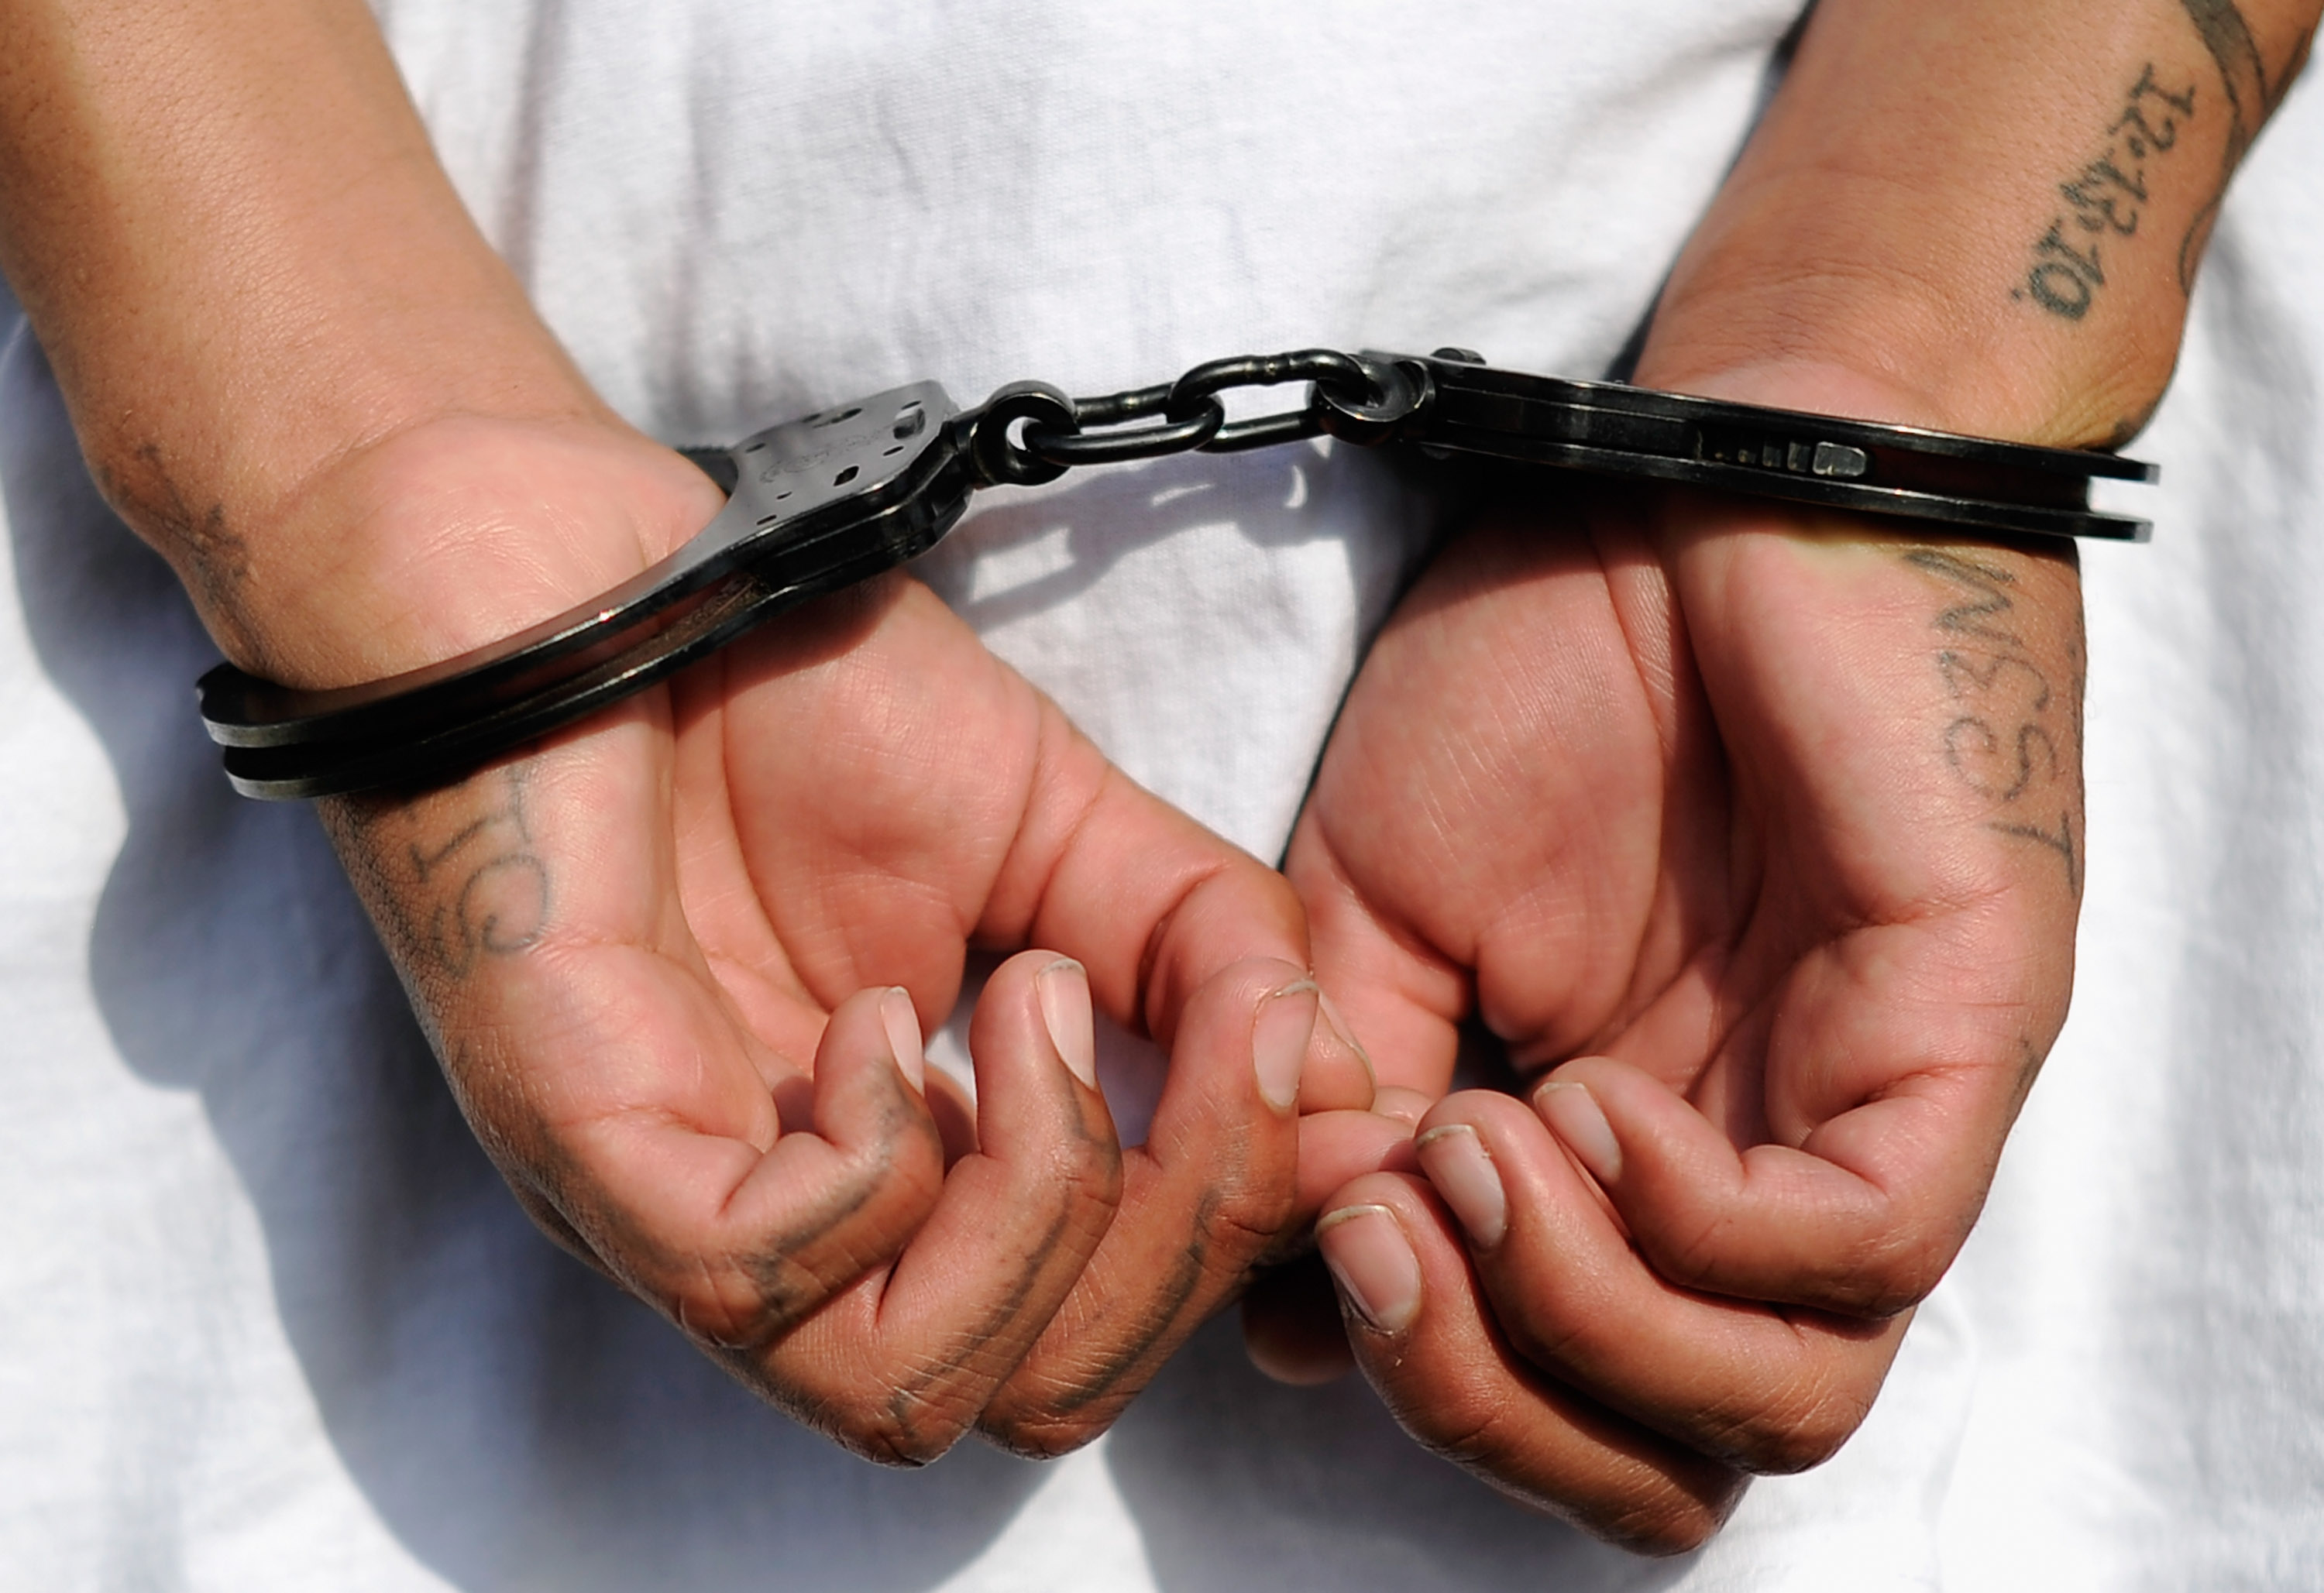 Handcuffs are seen on the hands of a twenty-year old  Street Villains  gang member who was arrested by Los Angeles Police Department officers from the 77th Street division on April 29, 2012 in Los Angeles, California.